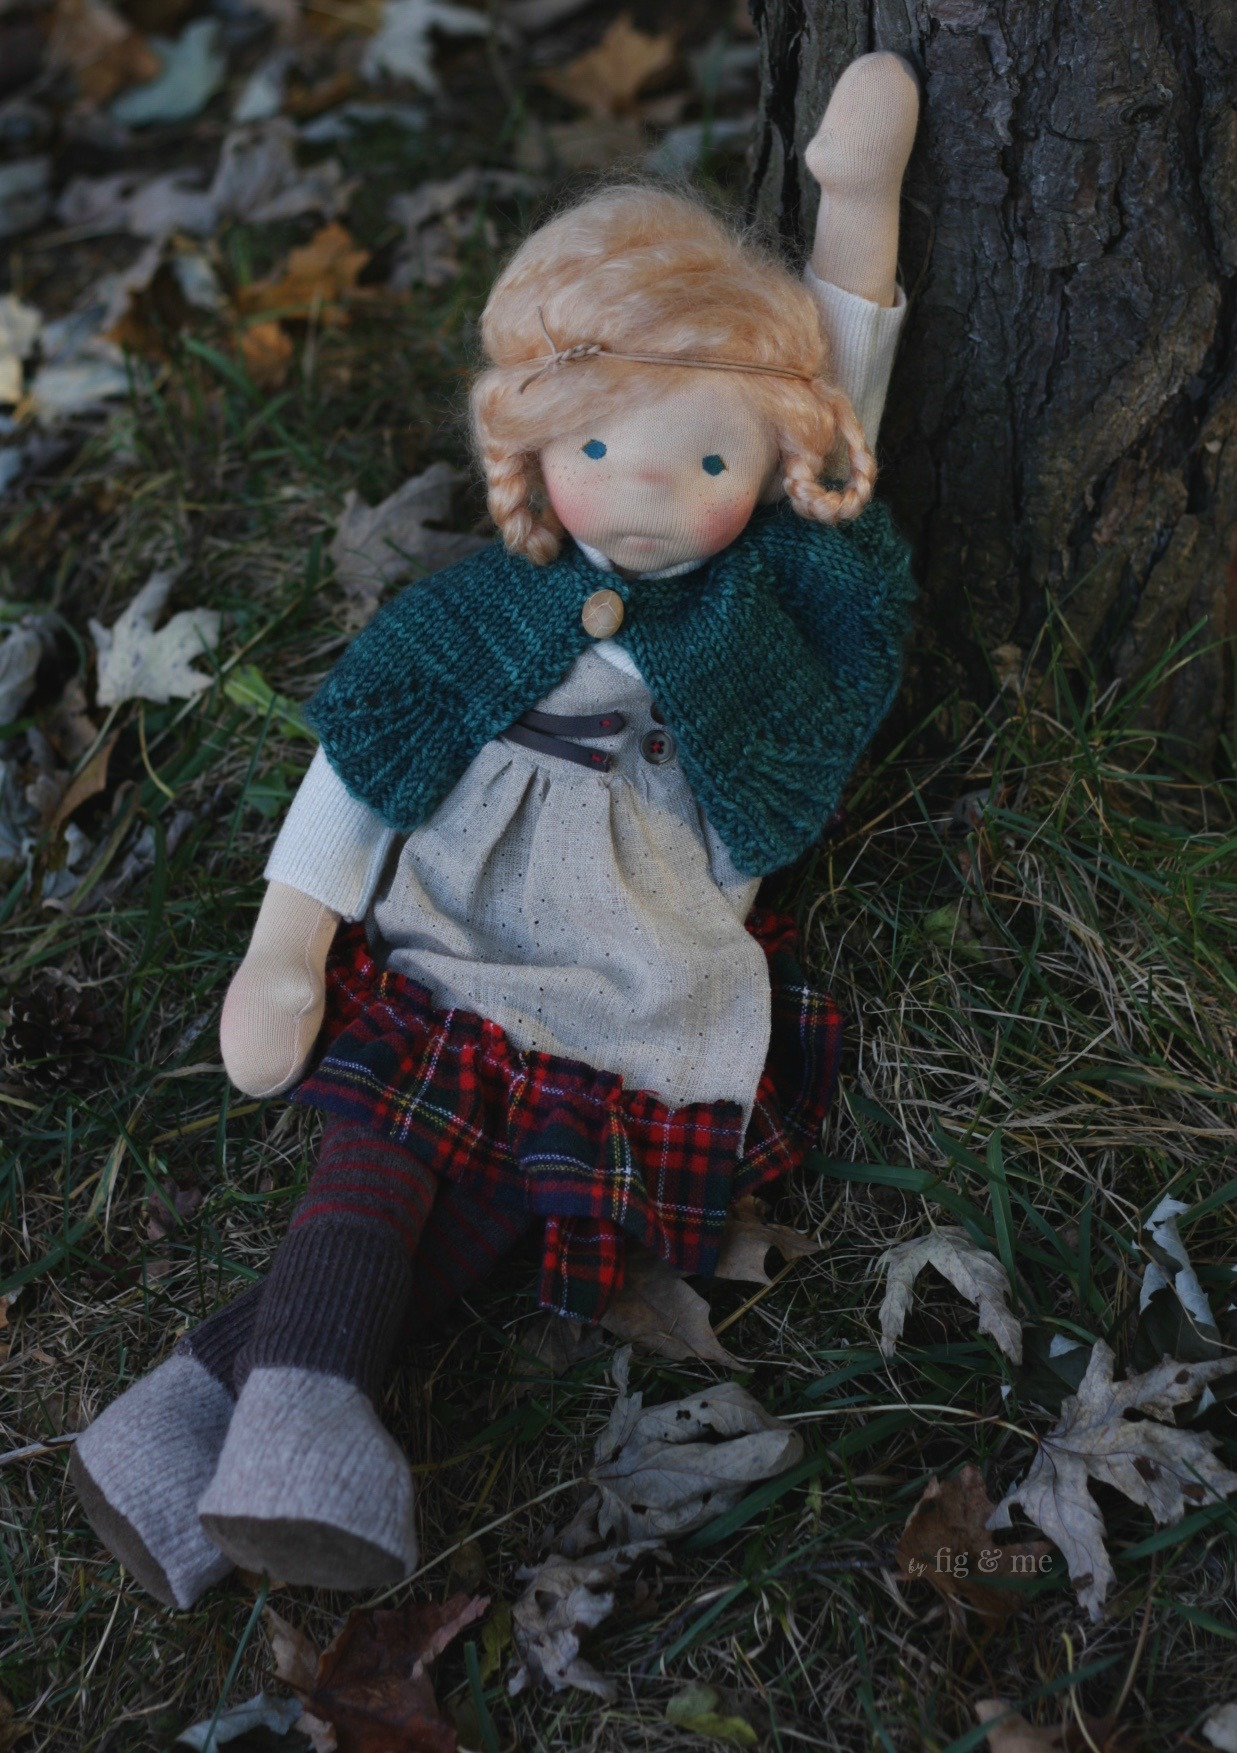 Iona, a natural fiber art doll, spending a lazy afternoon. By Fig and Me.